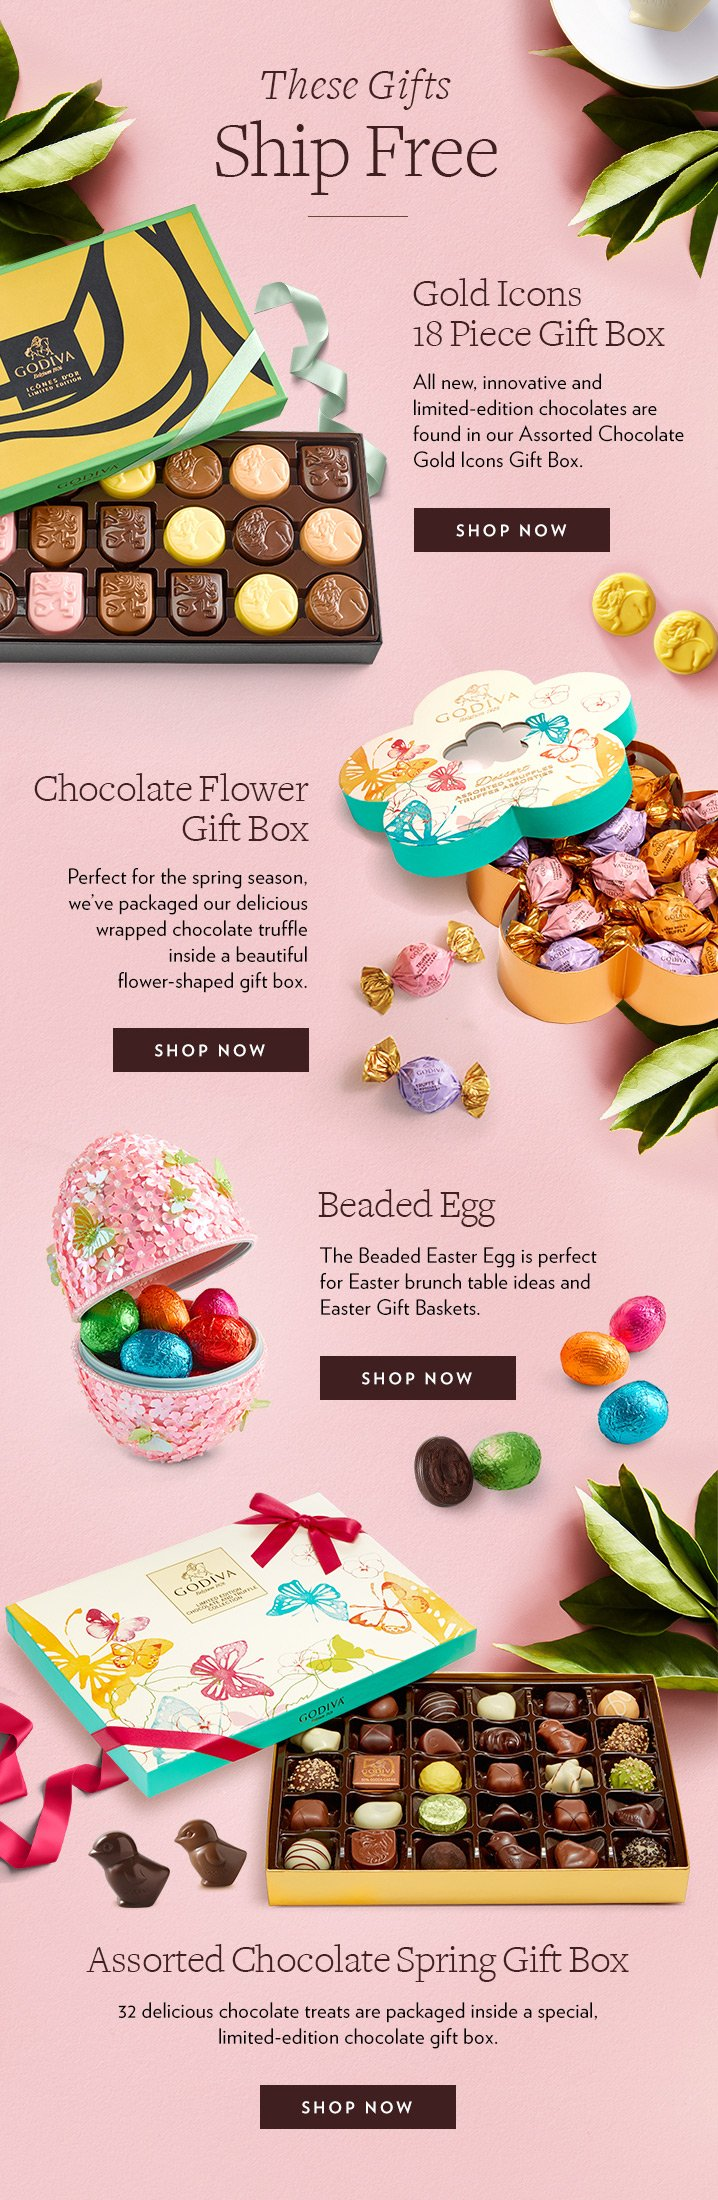 Godiva last day free shipping on easter gifts gift just for free standard shipping on gold icon 18 pc and select easter gifts negle Images